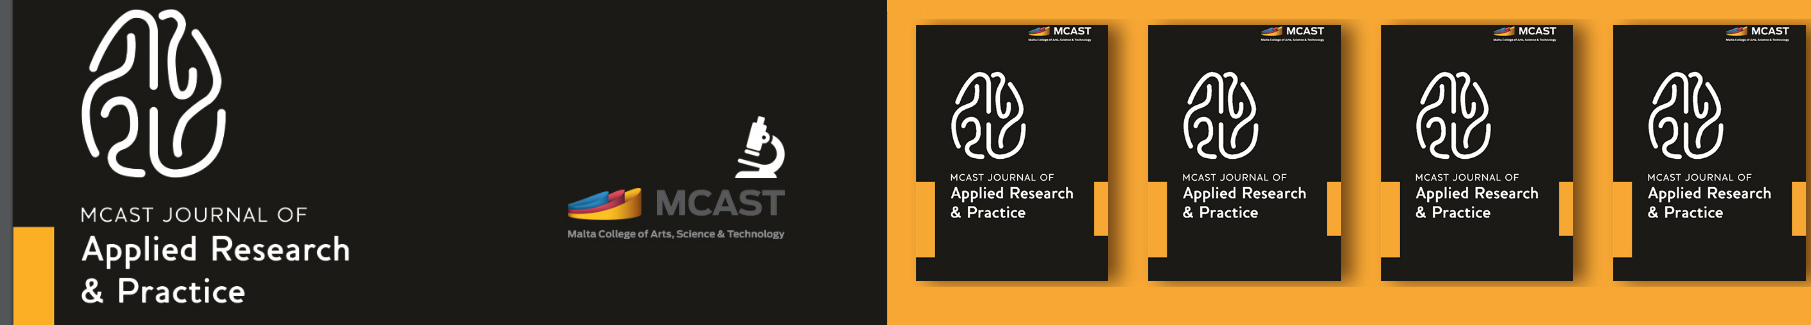 Research and Development Journals